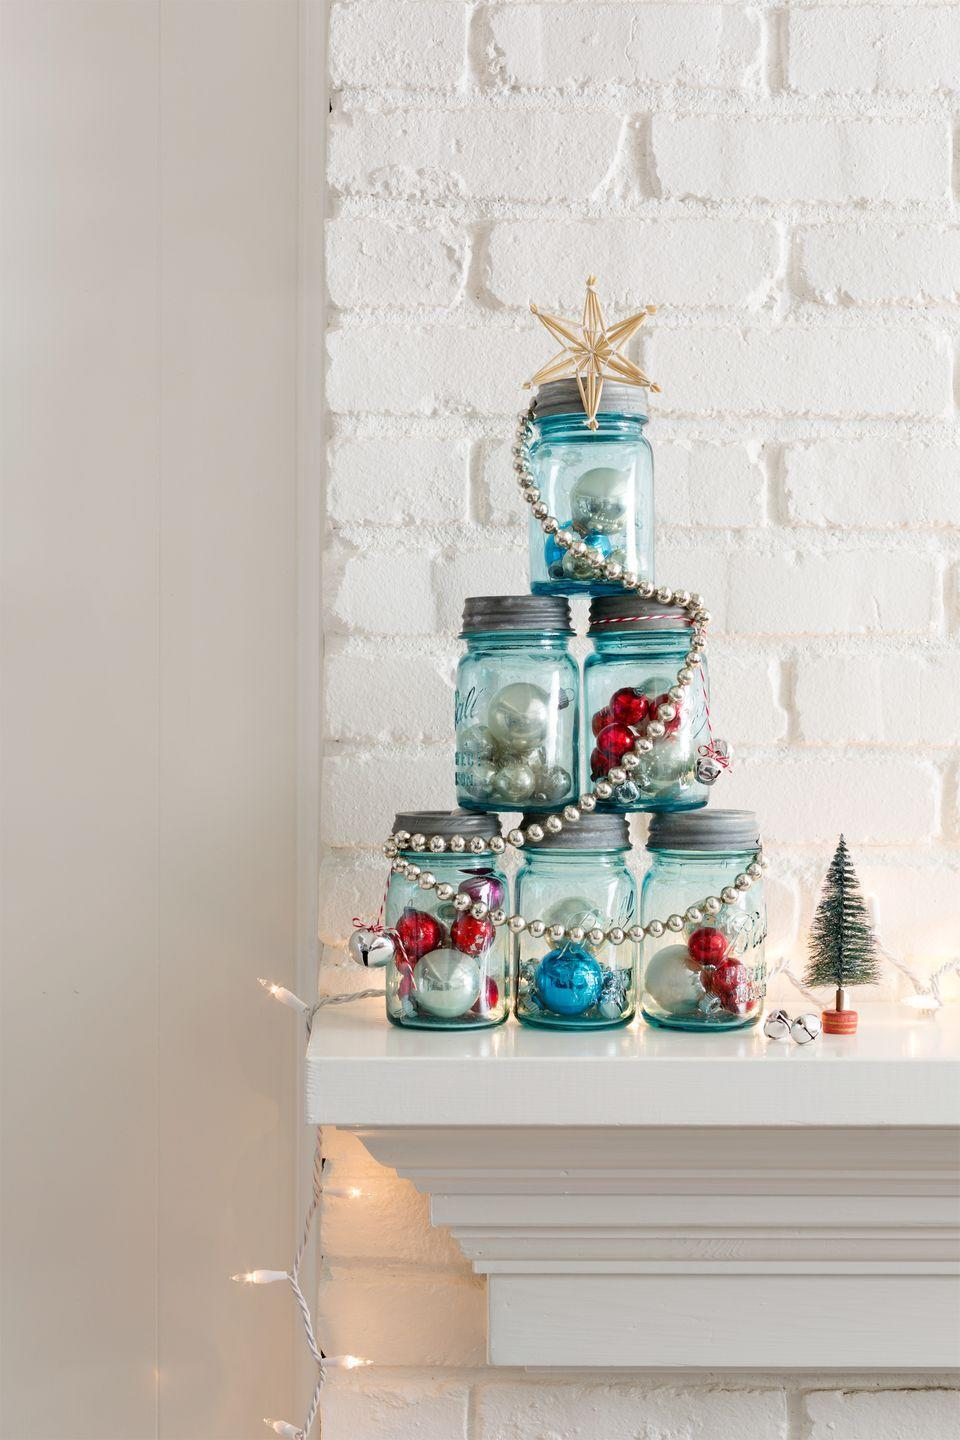 """<p>This idea's <a href=""""https://www.countryliving.com/home-design/decorating-ideas/g1571/holiday-mantels/"""" rel=""""nofollow noopener"""" target=""""_blank"""" data-ylk=""""slk:perfect for a mantel"""" class=""""link rapid-noclick-resp"""">perfect for a mantel</a> or entry table: Fill six like-sized <a href=""""https://www.amazon.com/Ball-Mouth-Elite-Collection-Quart/dp/B01AAHHBIQ/?tag=syn-yahoo-20&ascsubtag=%5Bartid%7C10050.g.2781%5Bsrc%7Cyahoo-us"""" rel=""""nofollow noopener"""" target=""""_blank"""" data-ylk=""""slk:canning jars"""" class=""""link rapid-noclick-resp"""">canning jars</a> with ornaments, tinsel, greenery, you name it. Assemble the jars in a pyramid, then wrap it with a shiny garland and top with a star. Done!</p><p><a class=""""link rapid-noclick-resp"""" href=""""https://www.amazon.com/Ball-Mouth-Elite-Collection-Quart/dp/B01AAHHBIQ/?tag=syn-yahoo-20&ascsubtag=%5Bartid%7C10050.g.2781%5Bsrc%7Cyahoo-us"""" rel=""""nofollow noopener"""" target=""""_blank"""" data-ylk=""""slk:SHOP BLUE MASON JARS"""">SHOP BLUE MASON JARS</a><br></p>"""